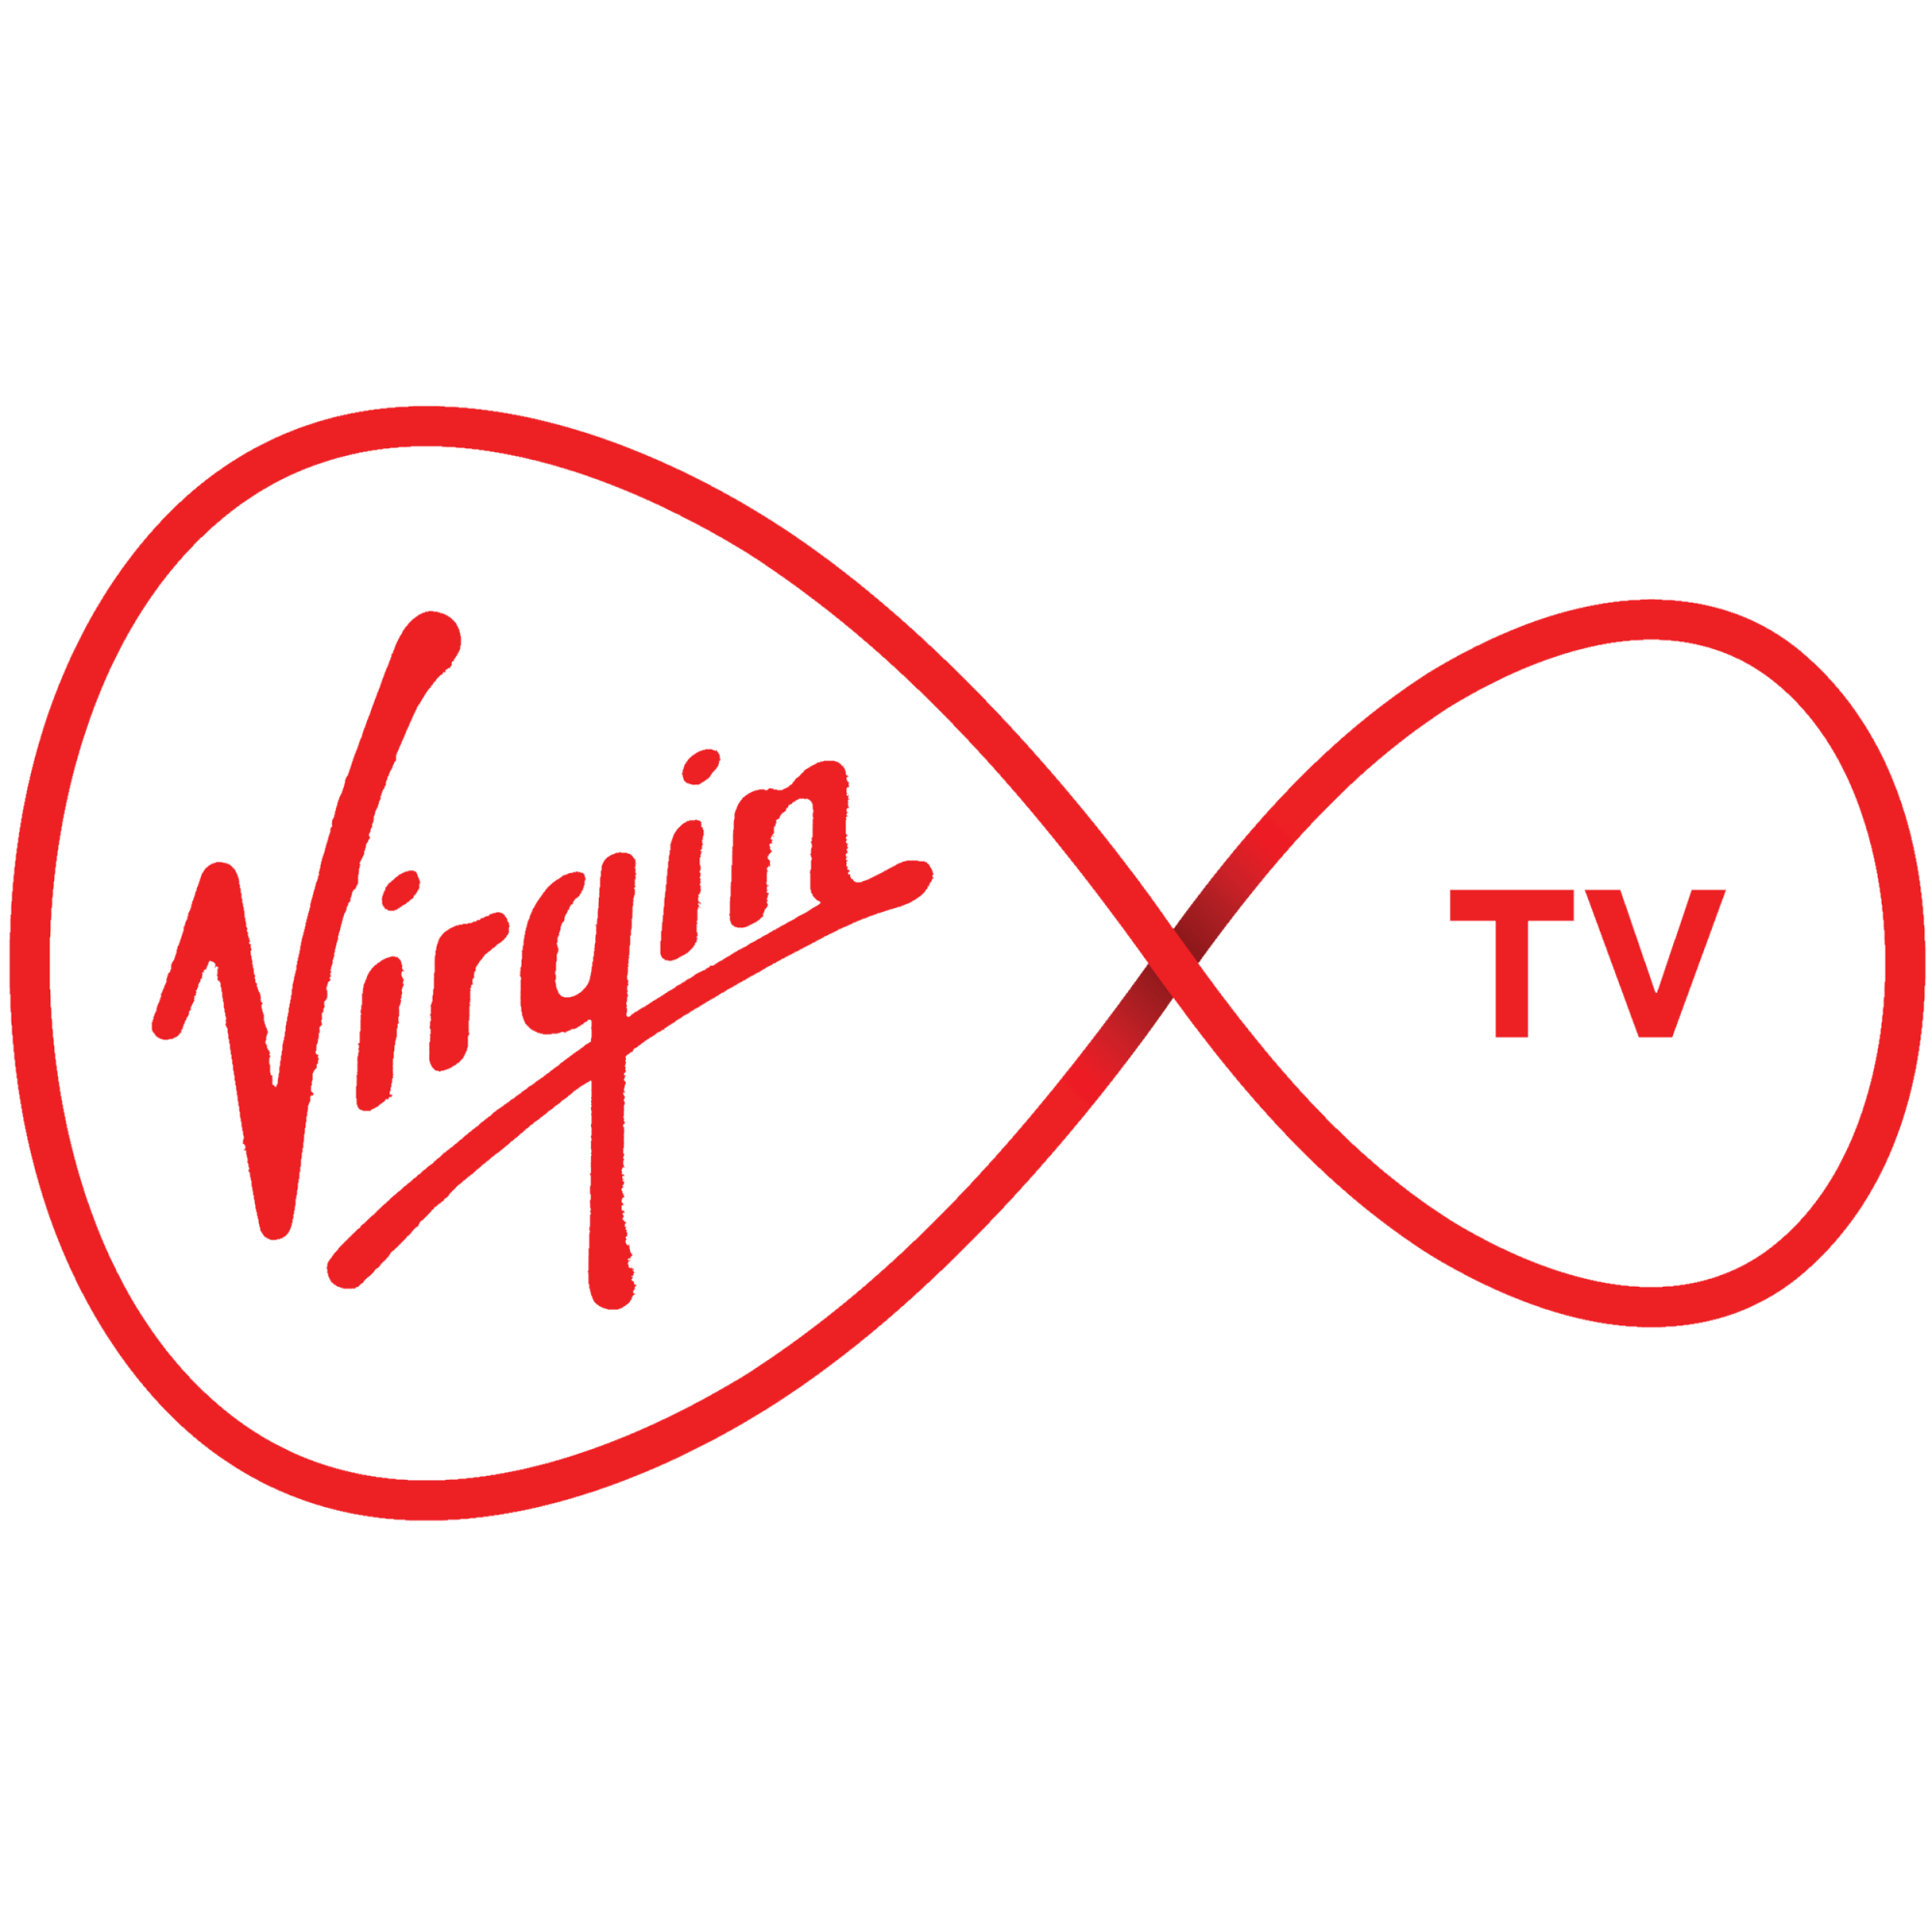 hight resolution of how much is a virgin media bundle with broadband and tv